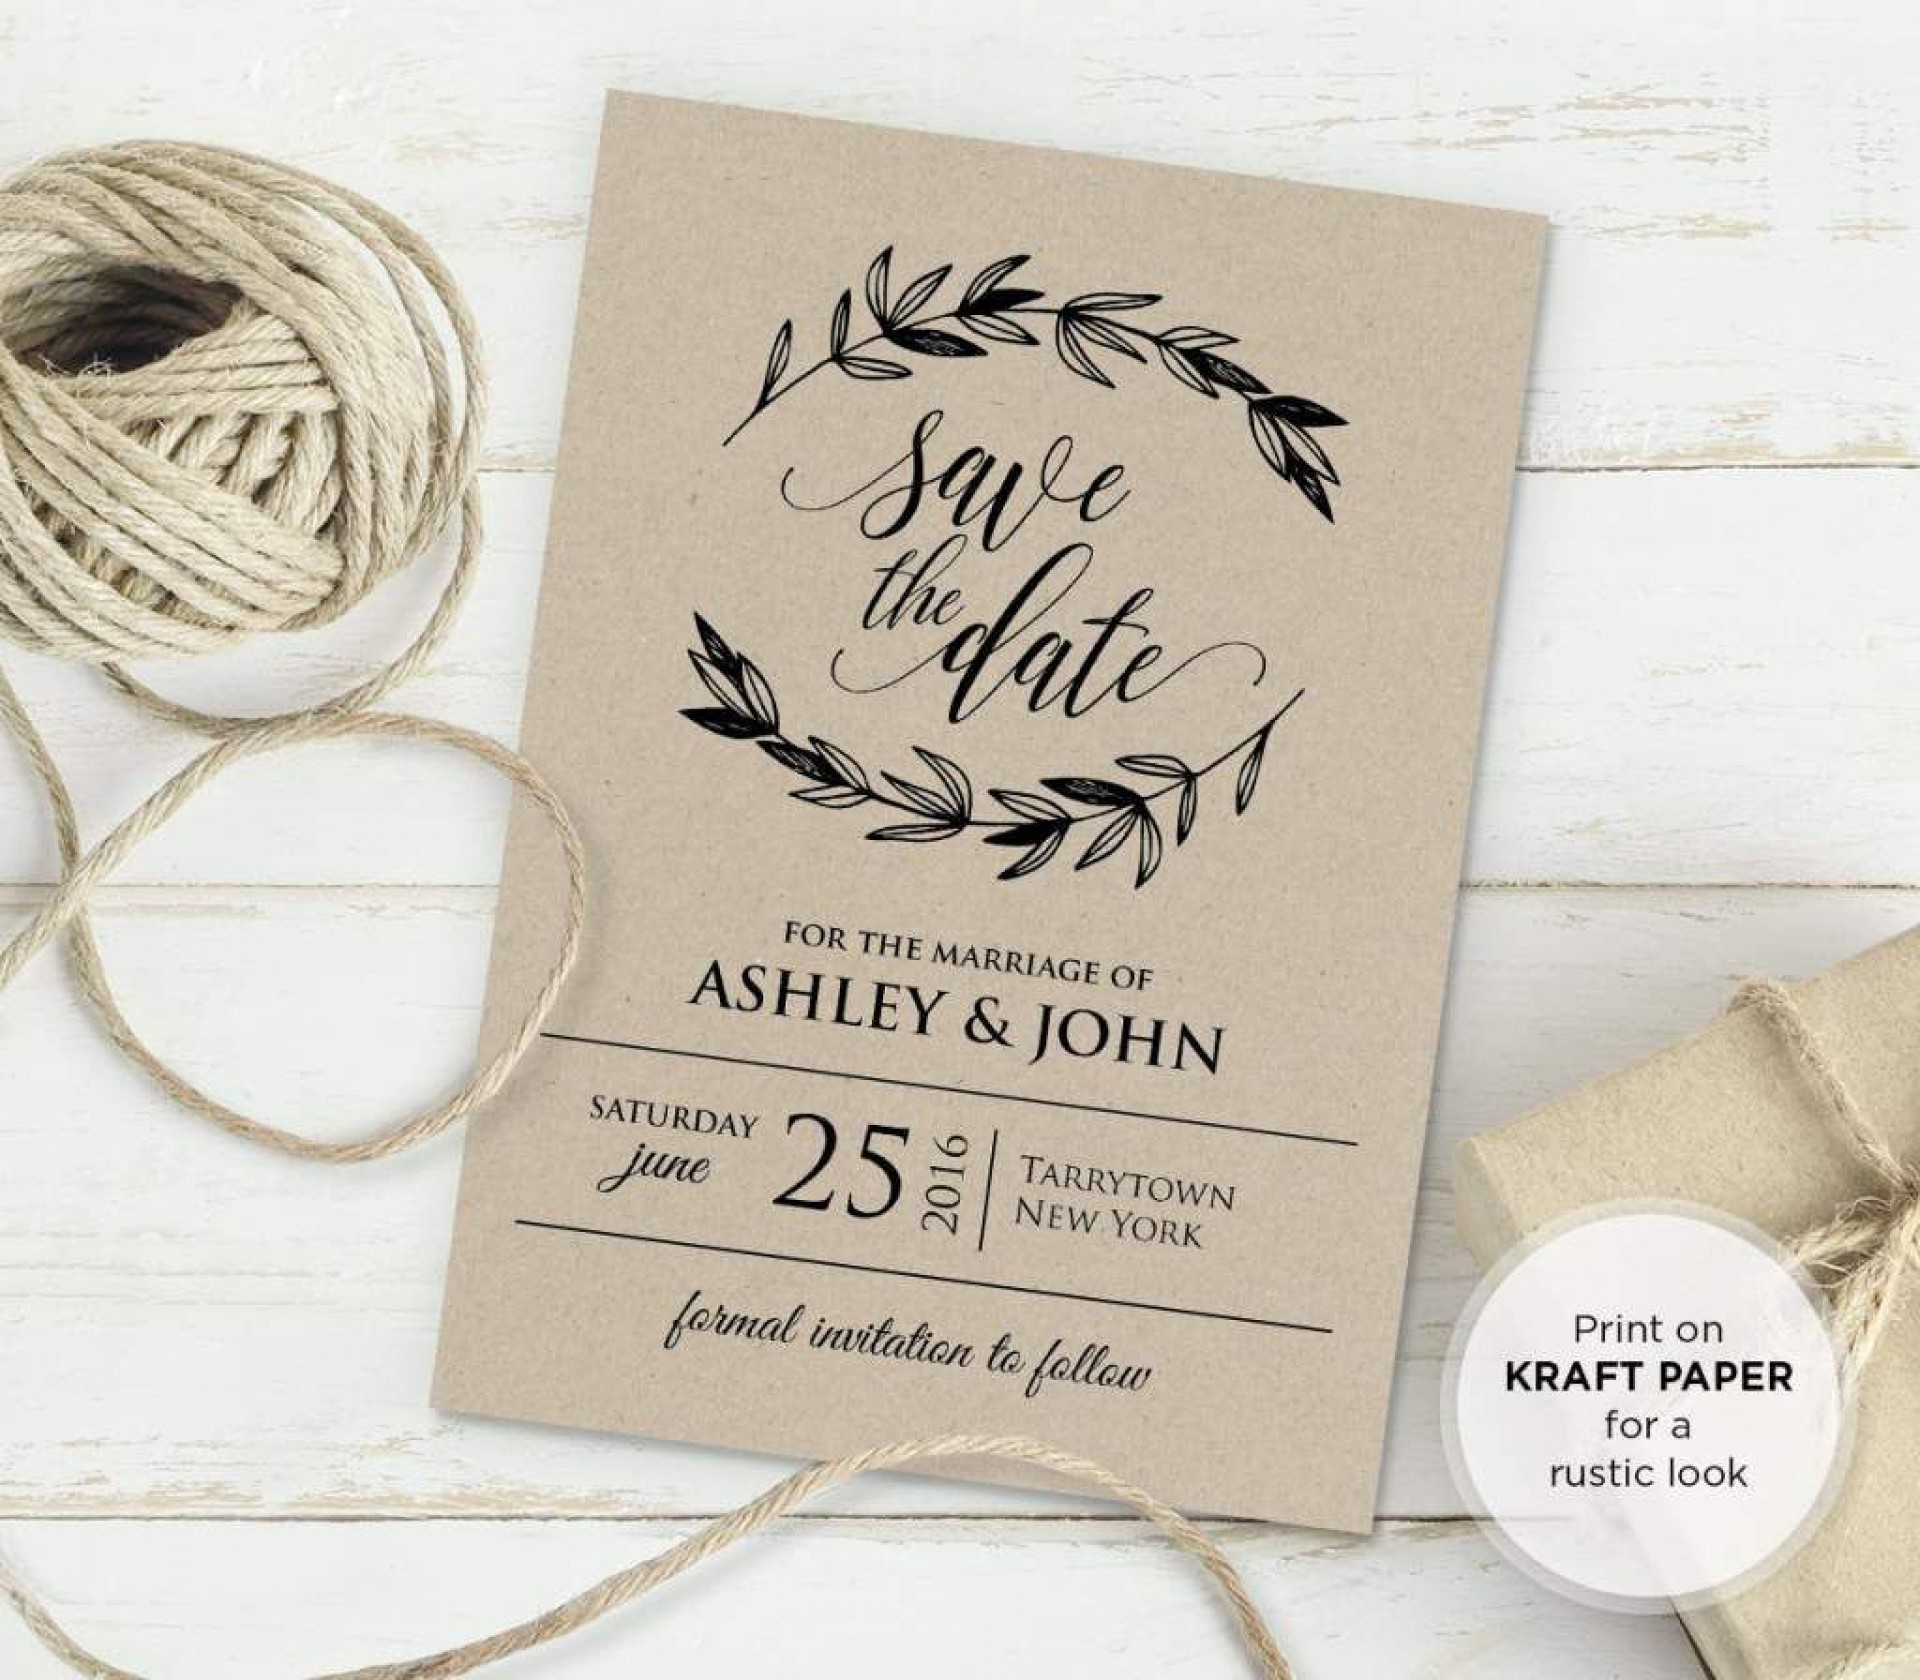 001 Striking Rustic Wedding Invitation Template Inspiration  Templates Free For Word Maker Photoshop1920